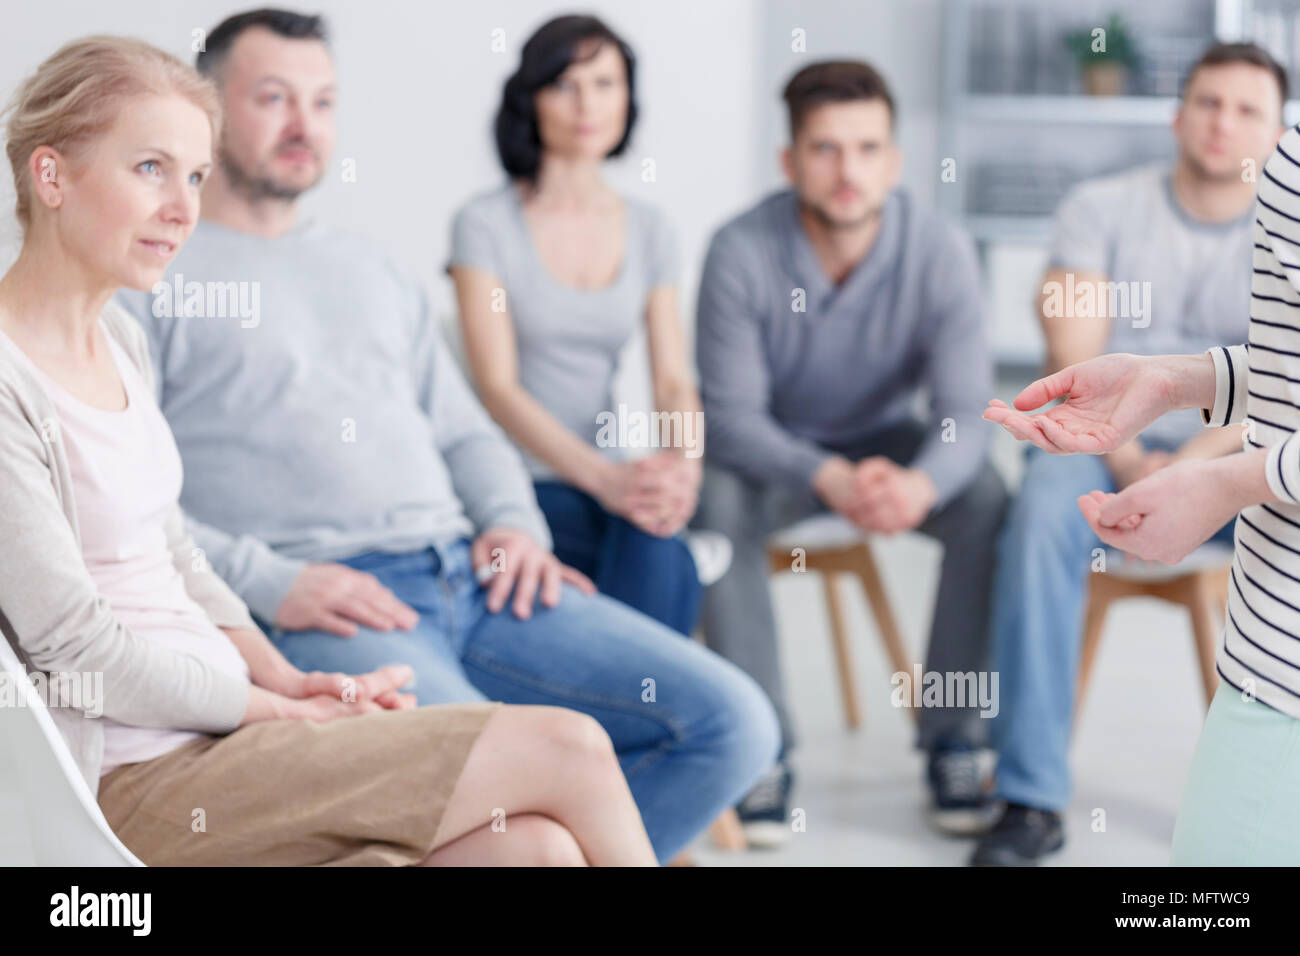 Addiction Counseling Stock Photos Addiction Counseling Stock